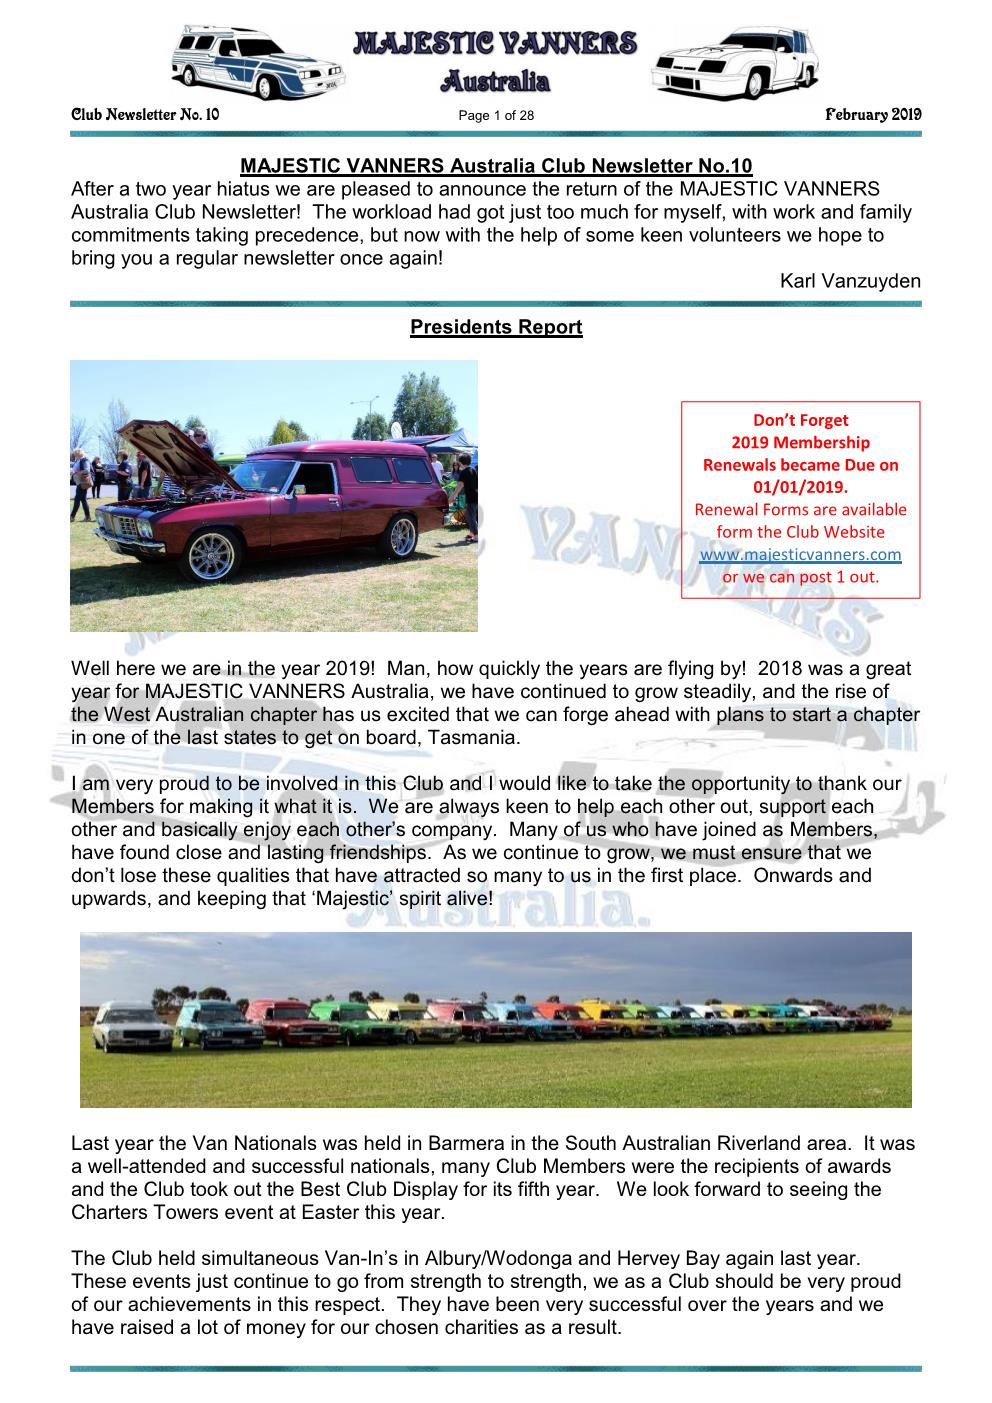 MAJESTIC VANNERS Newsletter Issue No: 10 February 2019 Mv_new38